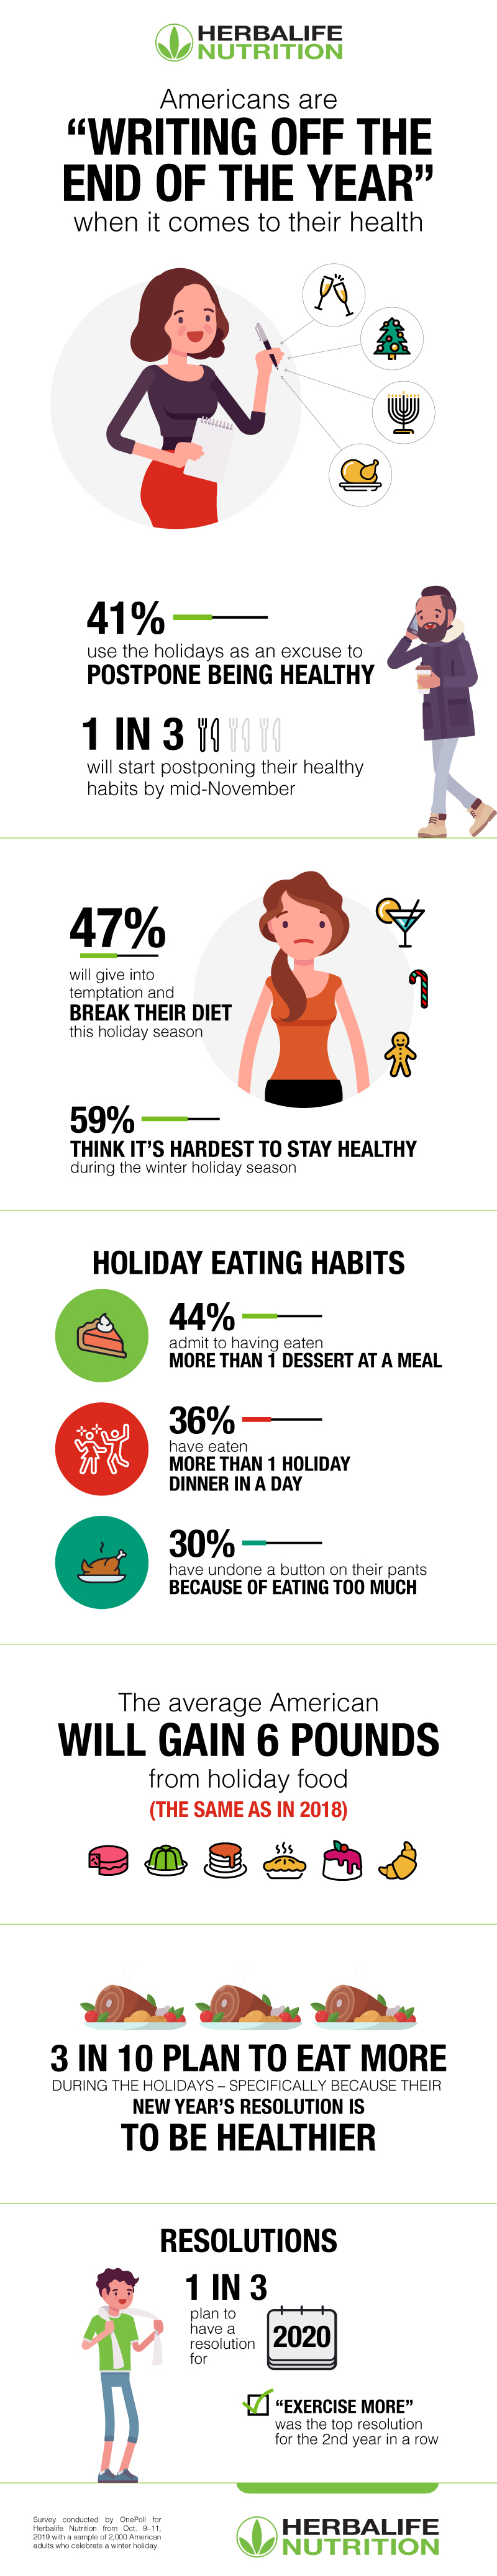 Holiday Eating Trends Infographic